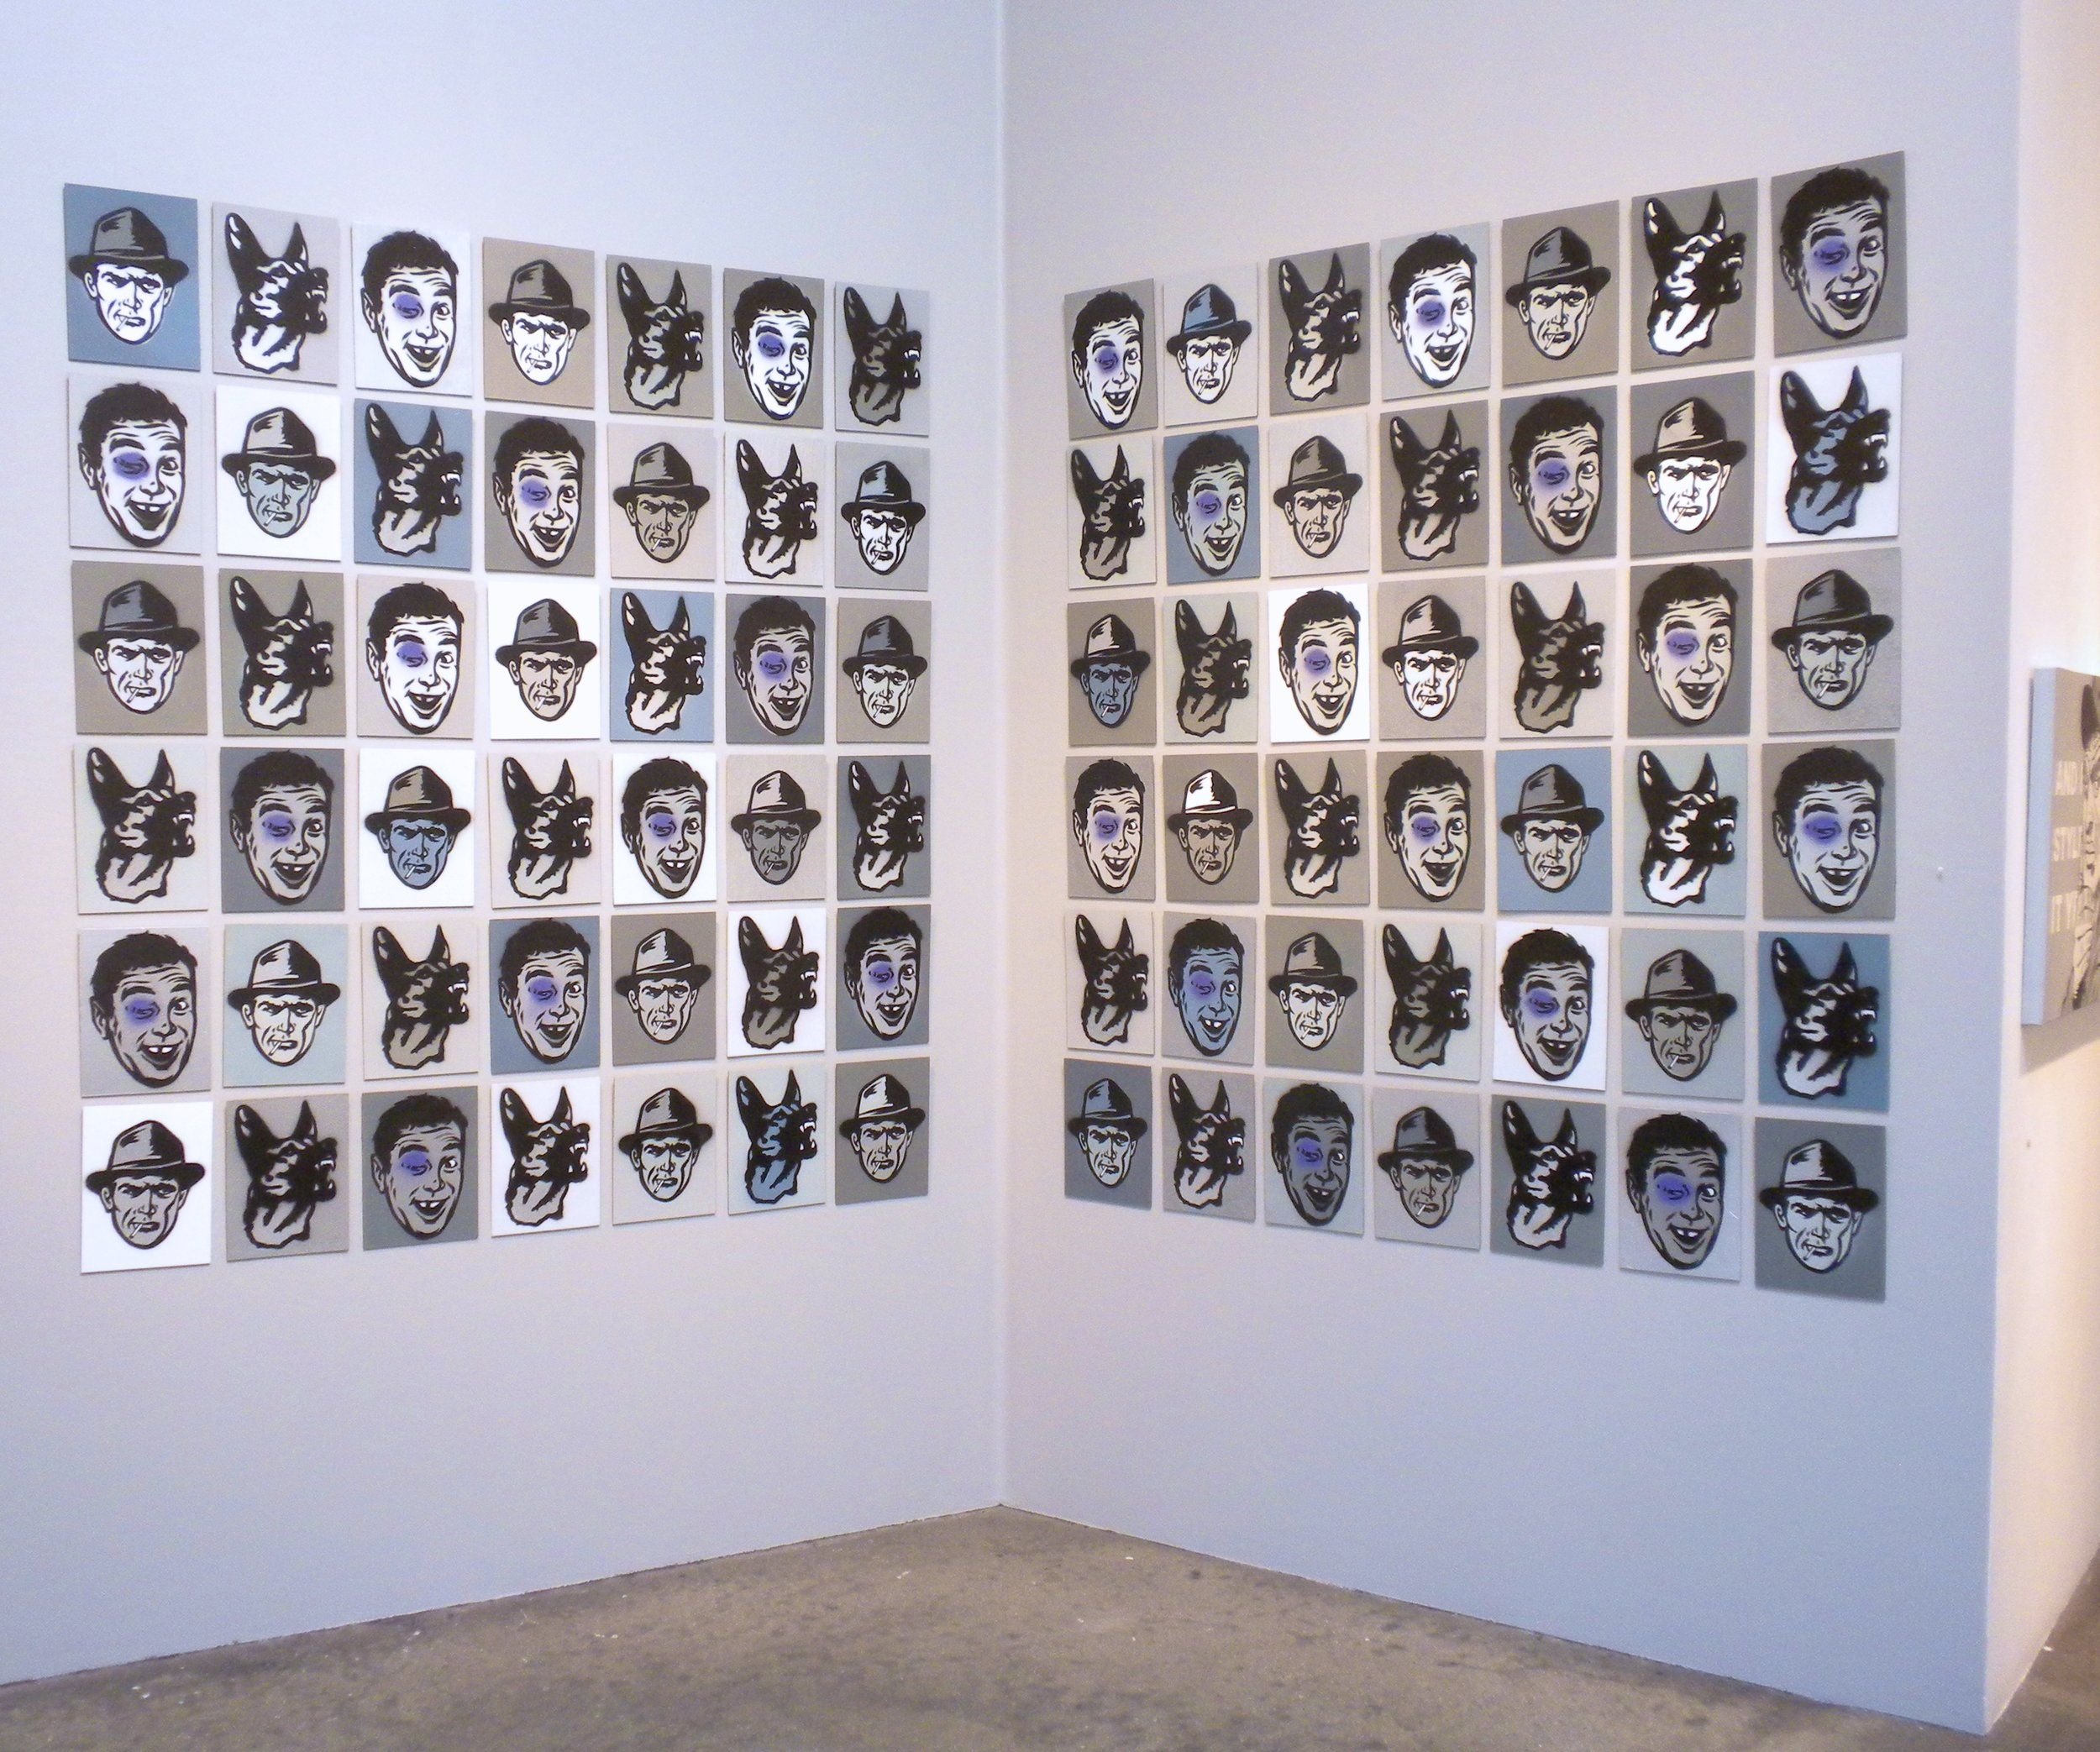 Small stencil series/gallery installation (Some still available for purchase)